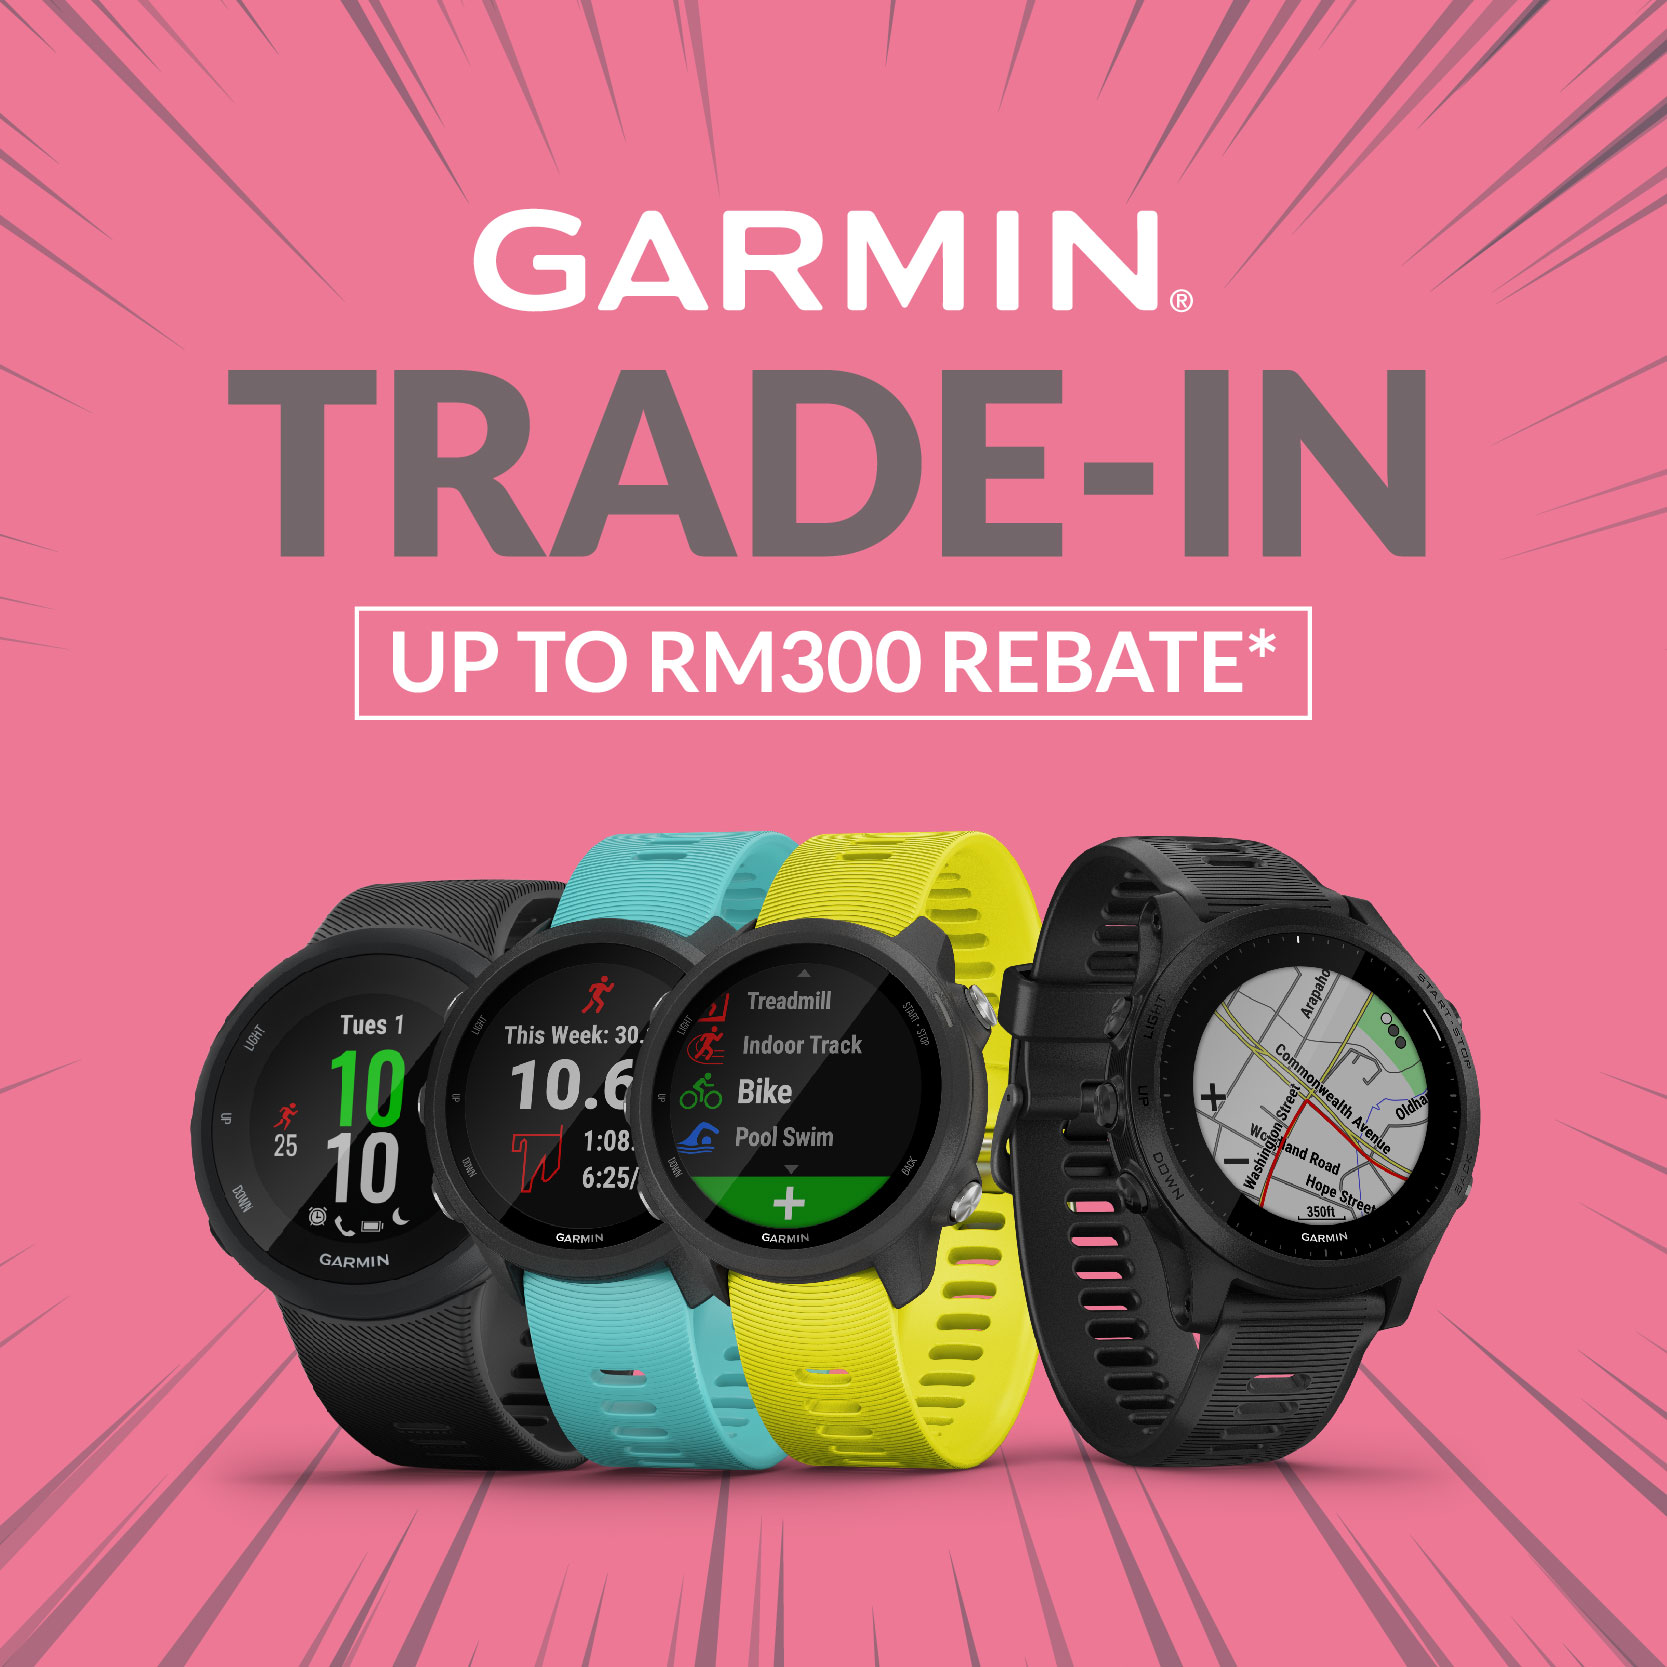 The Garmin's Trade-in Programme (Forerunner Series) is finally here! Upgrade your Garmin today and enjoy up to RM300 worth of rebates when you trade in ANY wrist watch for the following Garmin Forerunner Series:-